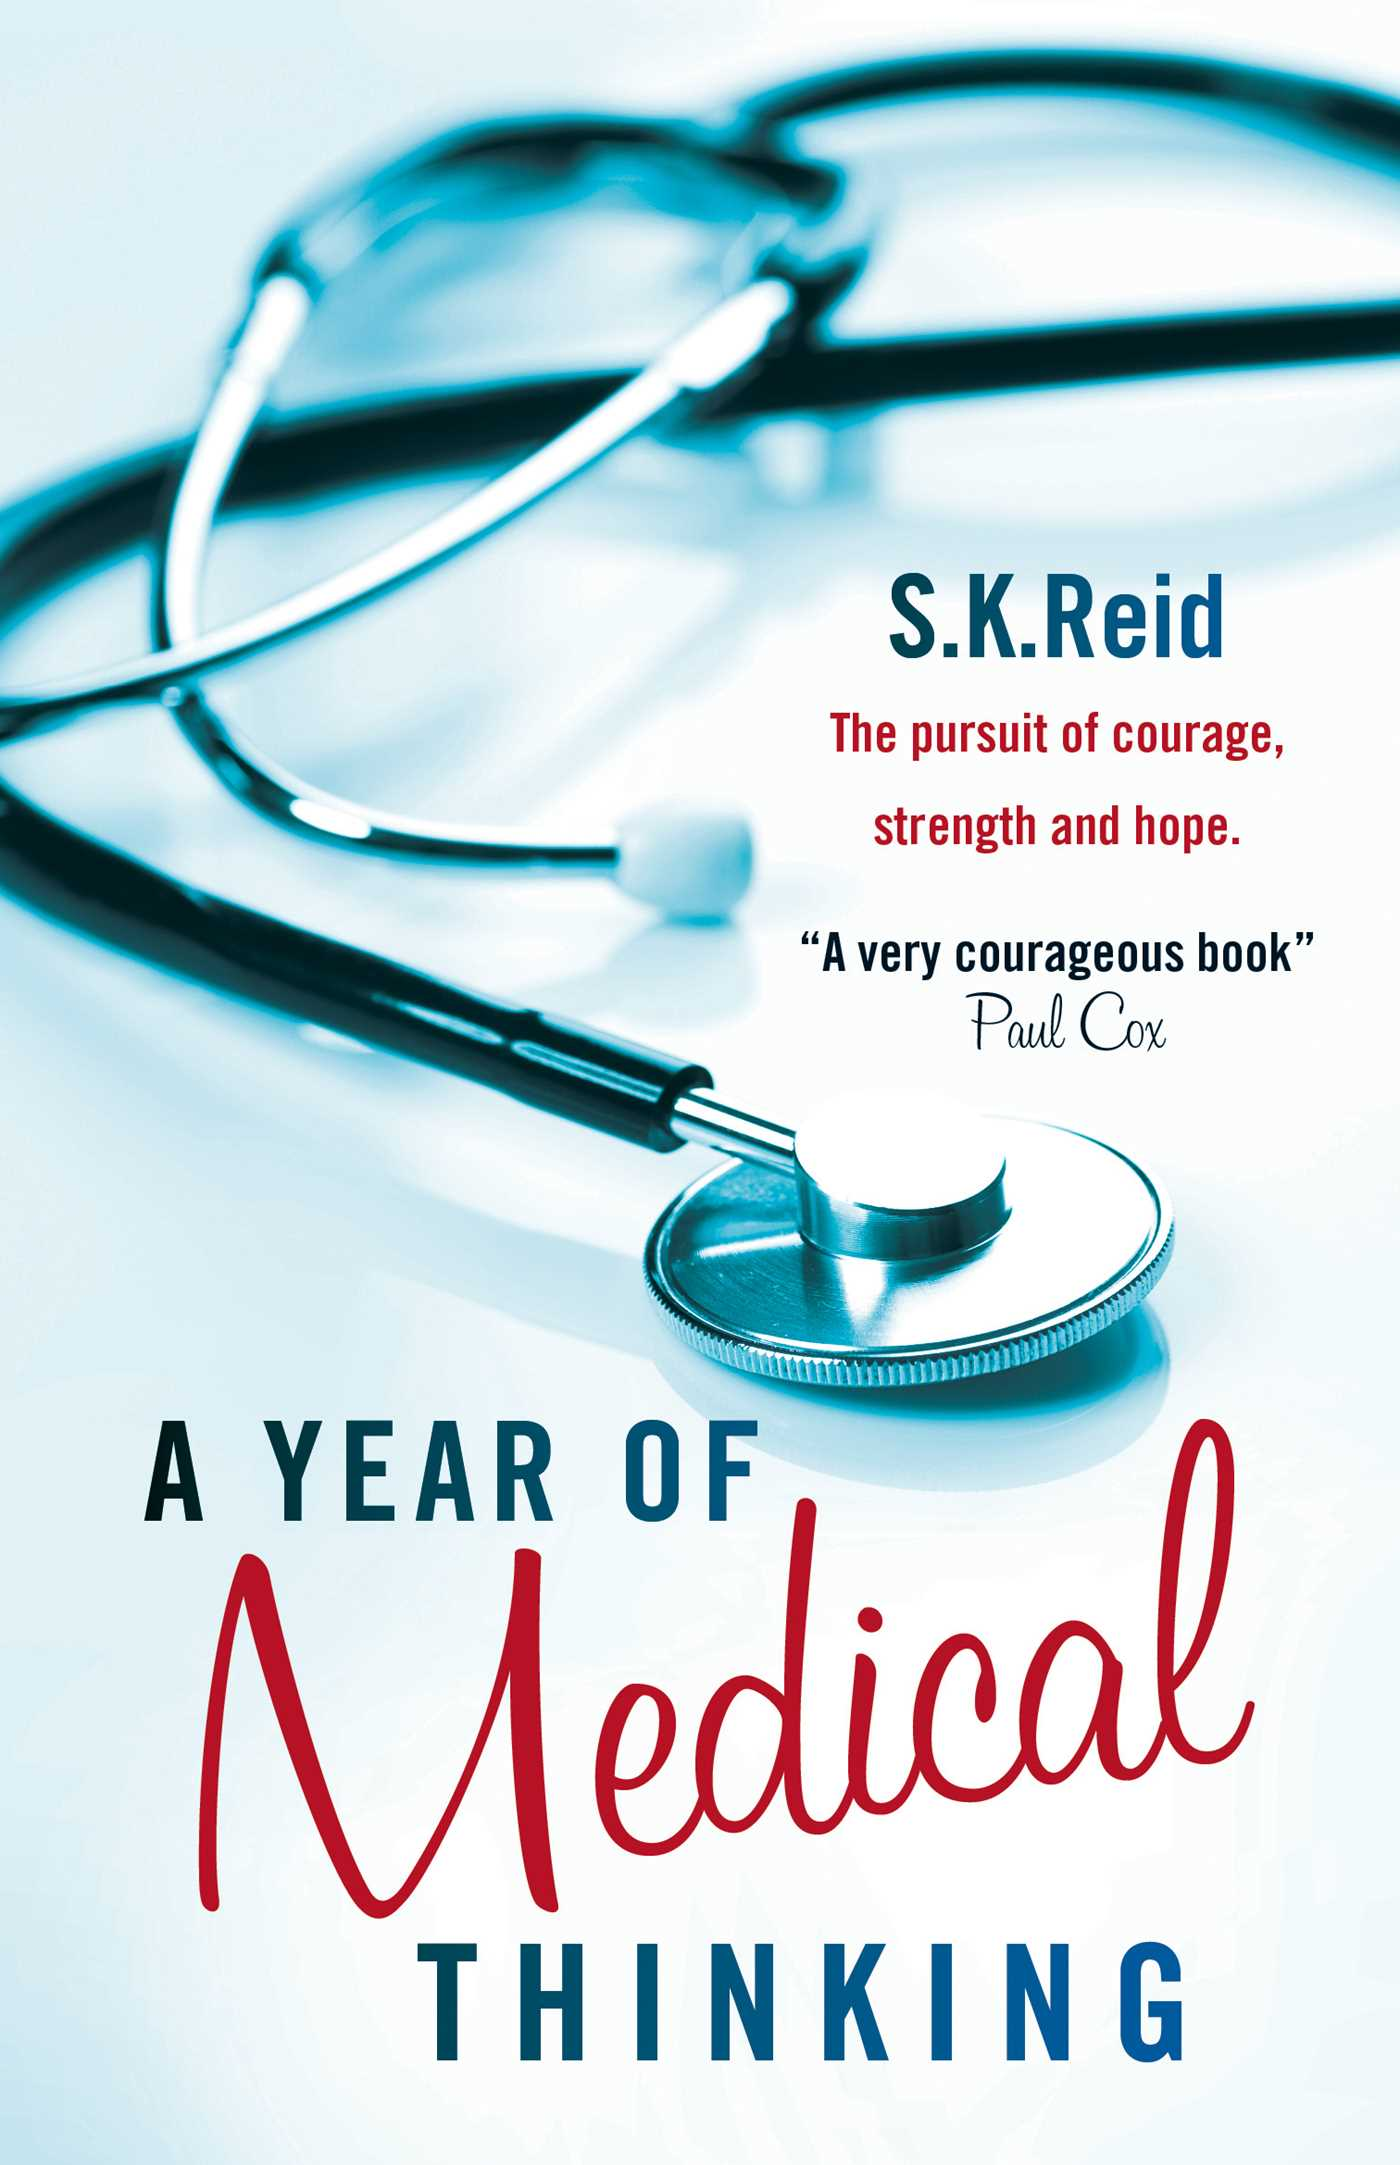 A year of medical thinking by S.K Reid book cover